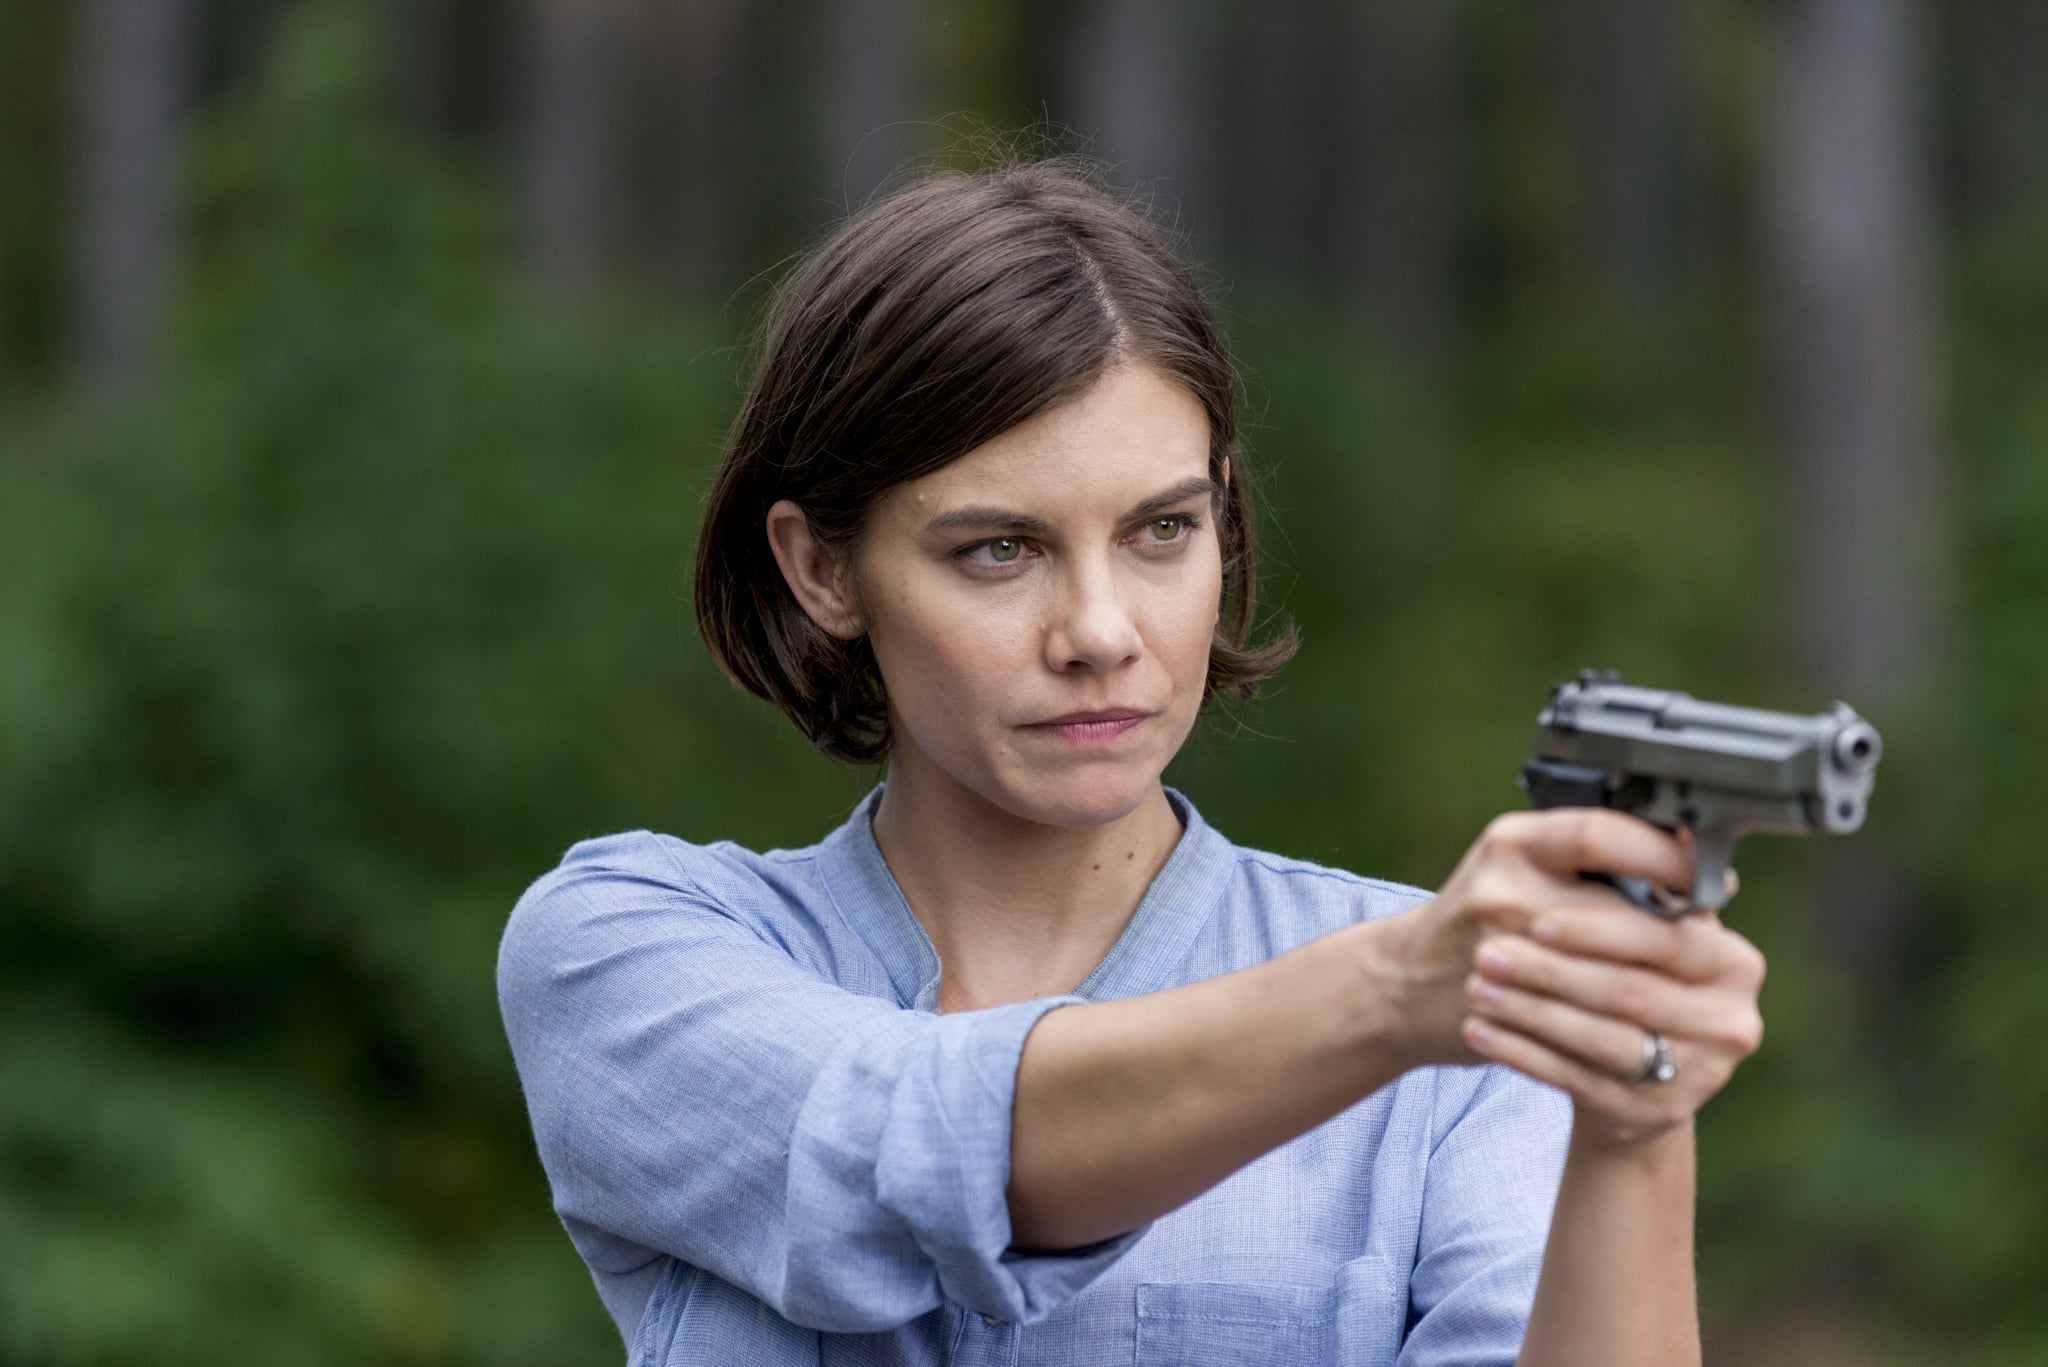 The Walking Dead - Season 8, Episode 12 - The Key Review